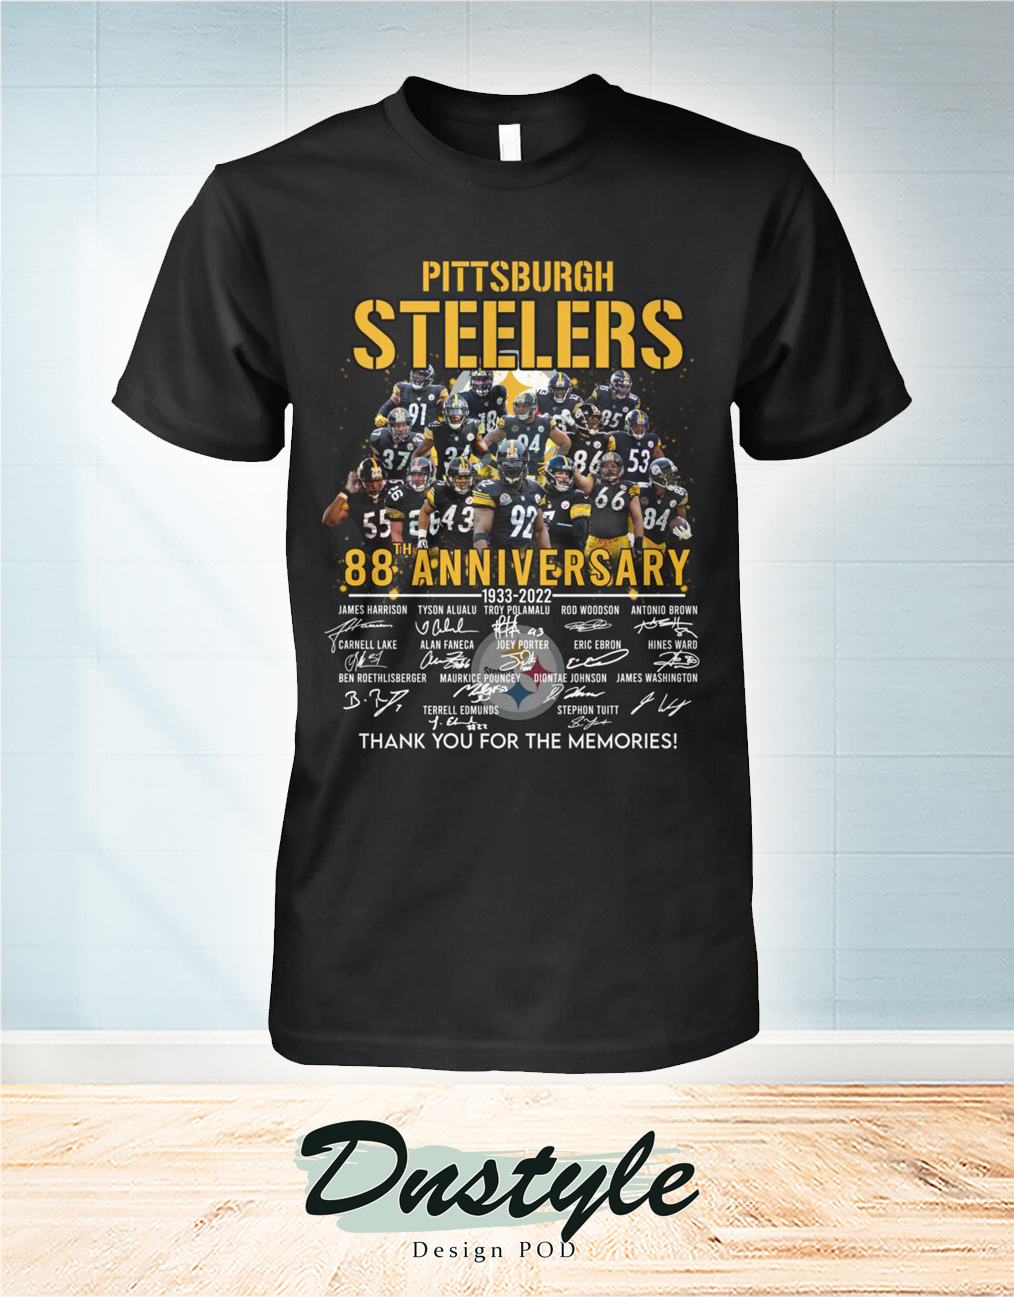 Pittsburgh steelers 88 anniversary signature thank you for the memories shirt